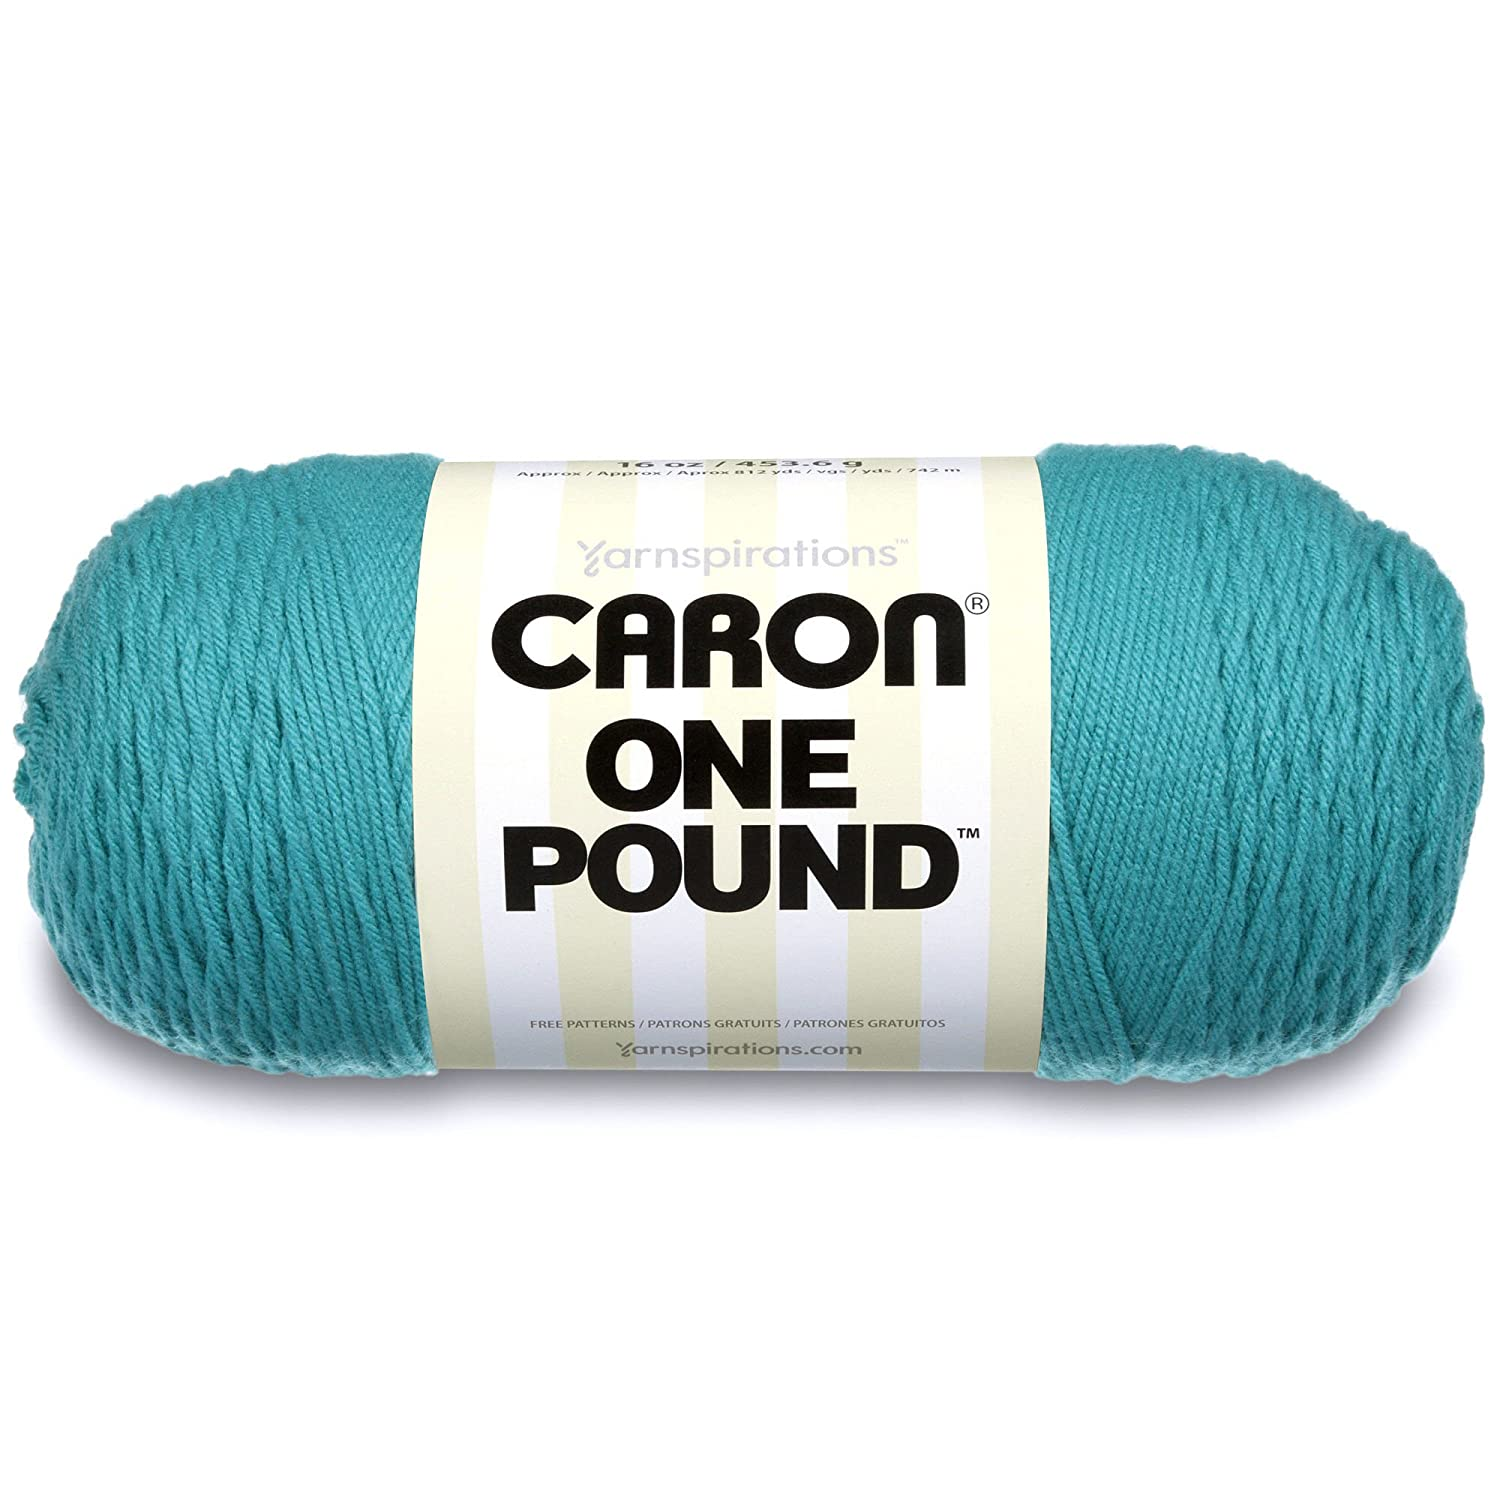 Caron One Pound Solids Yarn - (4) Medium Gauge 100% Acrylic - 16 oz - Black- For Crochet, Knitting & Crafting Spinrite 294010-10503